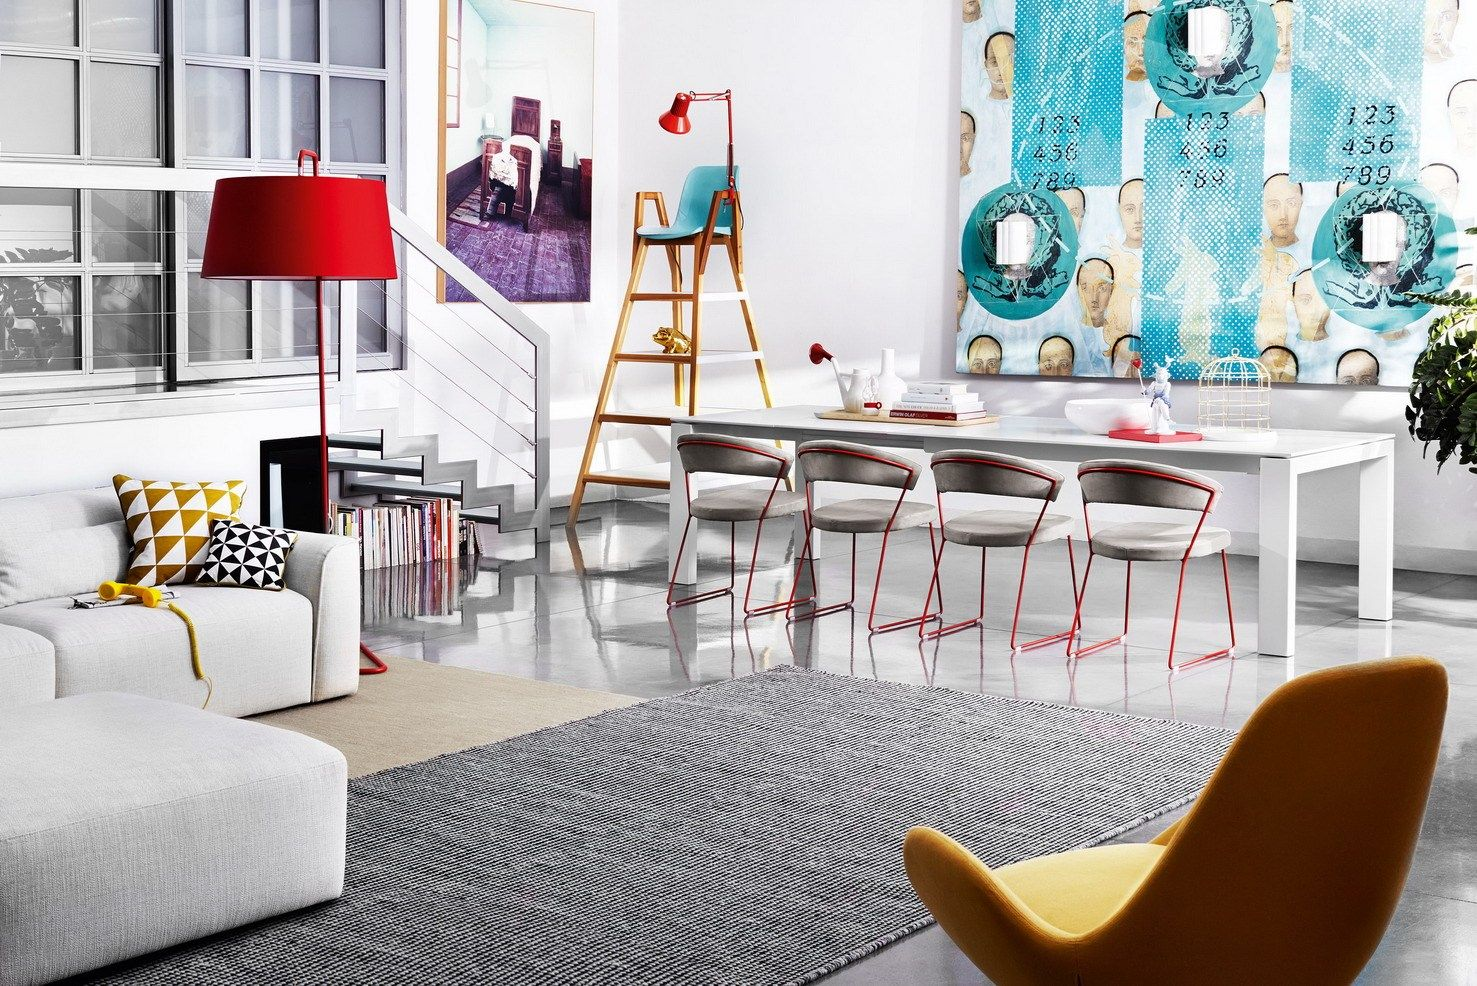 Calligaris: color and humor at Saloni 2013